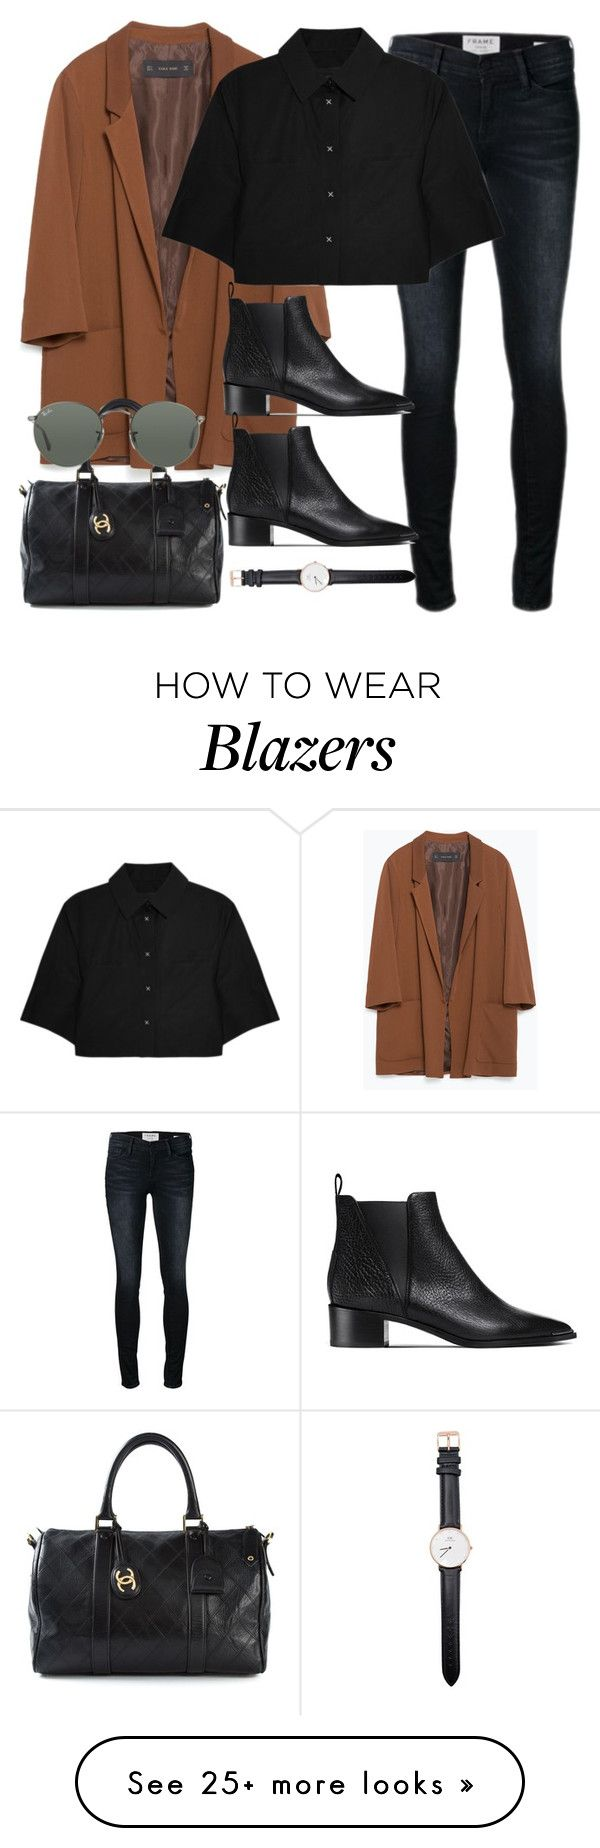 """""""Untitled #1910"""" by roxy-camarena on Polyvore featuring Frame Denim, Zara, Alexander Wang, Acne Studios, Daniel Wellington, Chanel and Ray-Ban"""